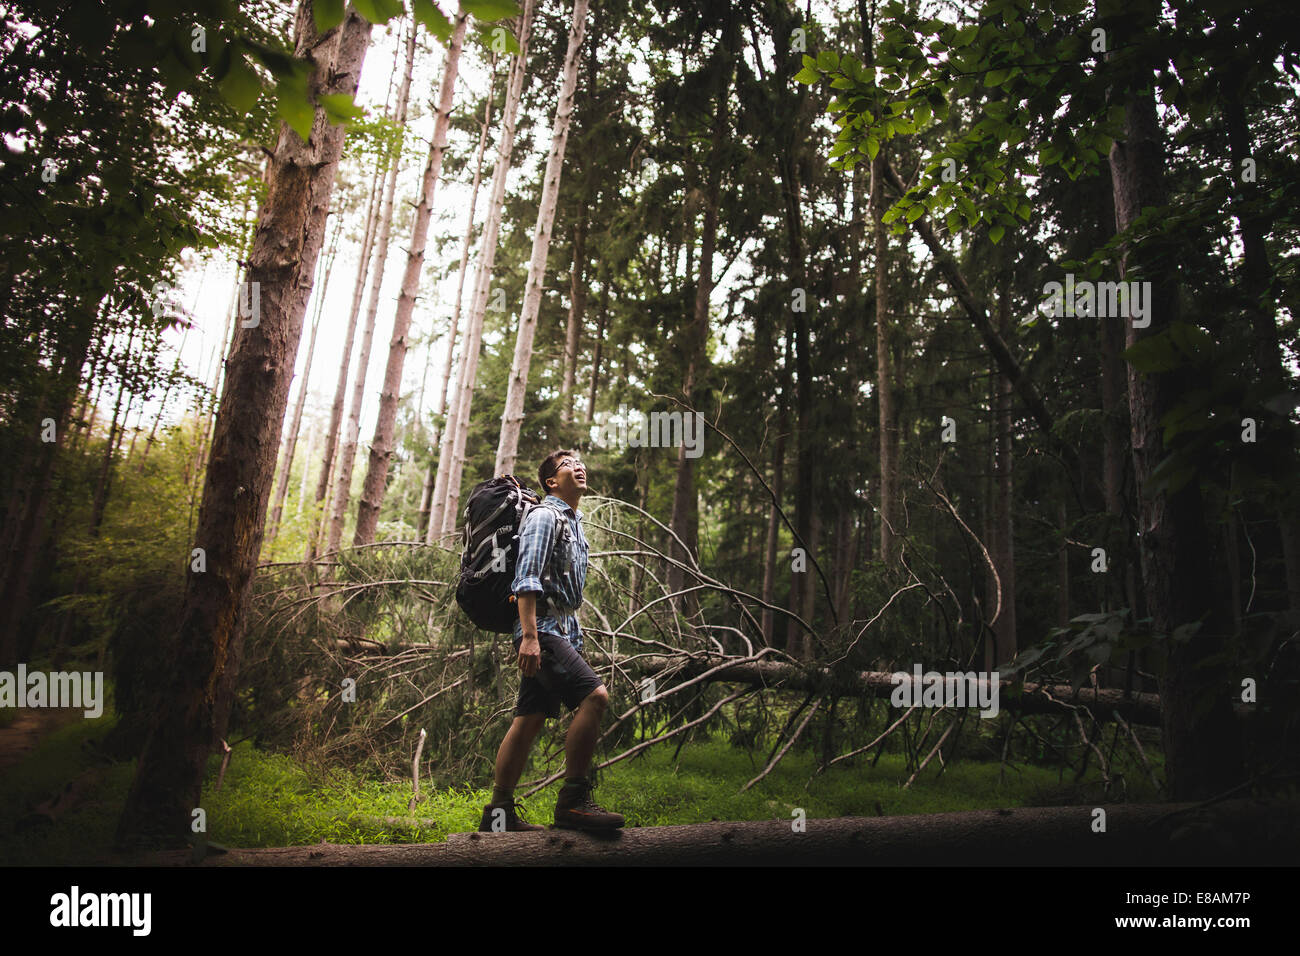 Mature man hiking in forest - Stock Image